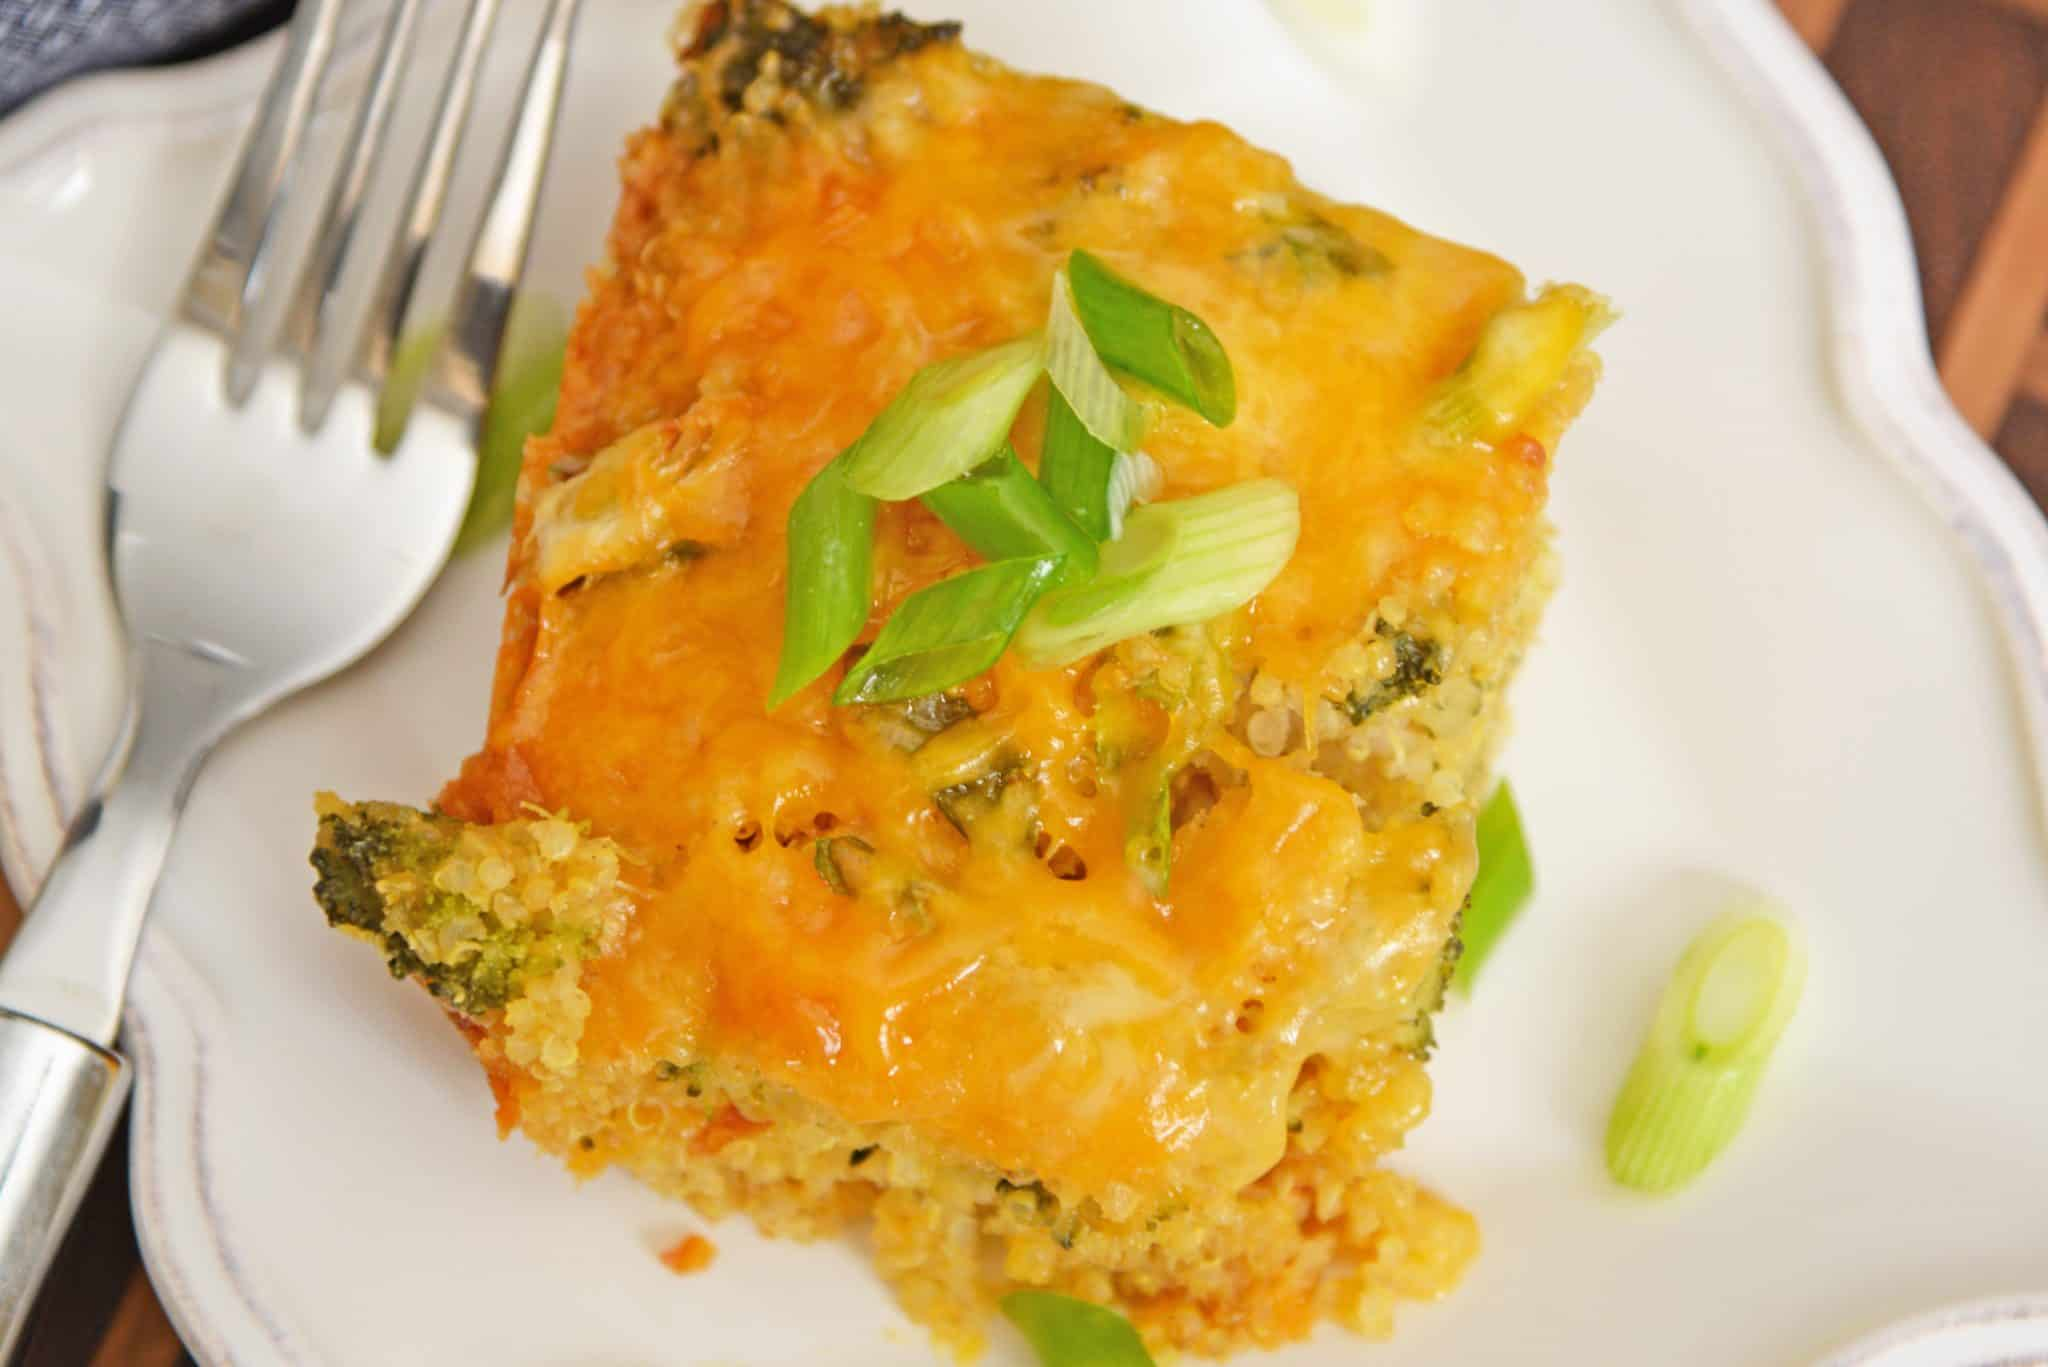 Broccoli Cheddar Quinoa Casserole is an easy quinoa recipe that uses broccoli, cheddar, and of course quinoa! Make this delicious quinoa recipe today! #quinoarecipes #whatisquinoa? #quinoasidedishrecipes www.savoryexperiments.com